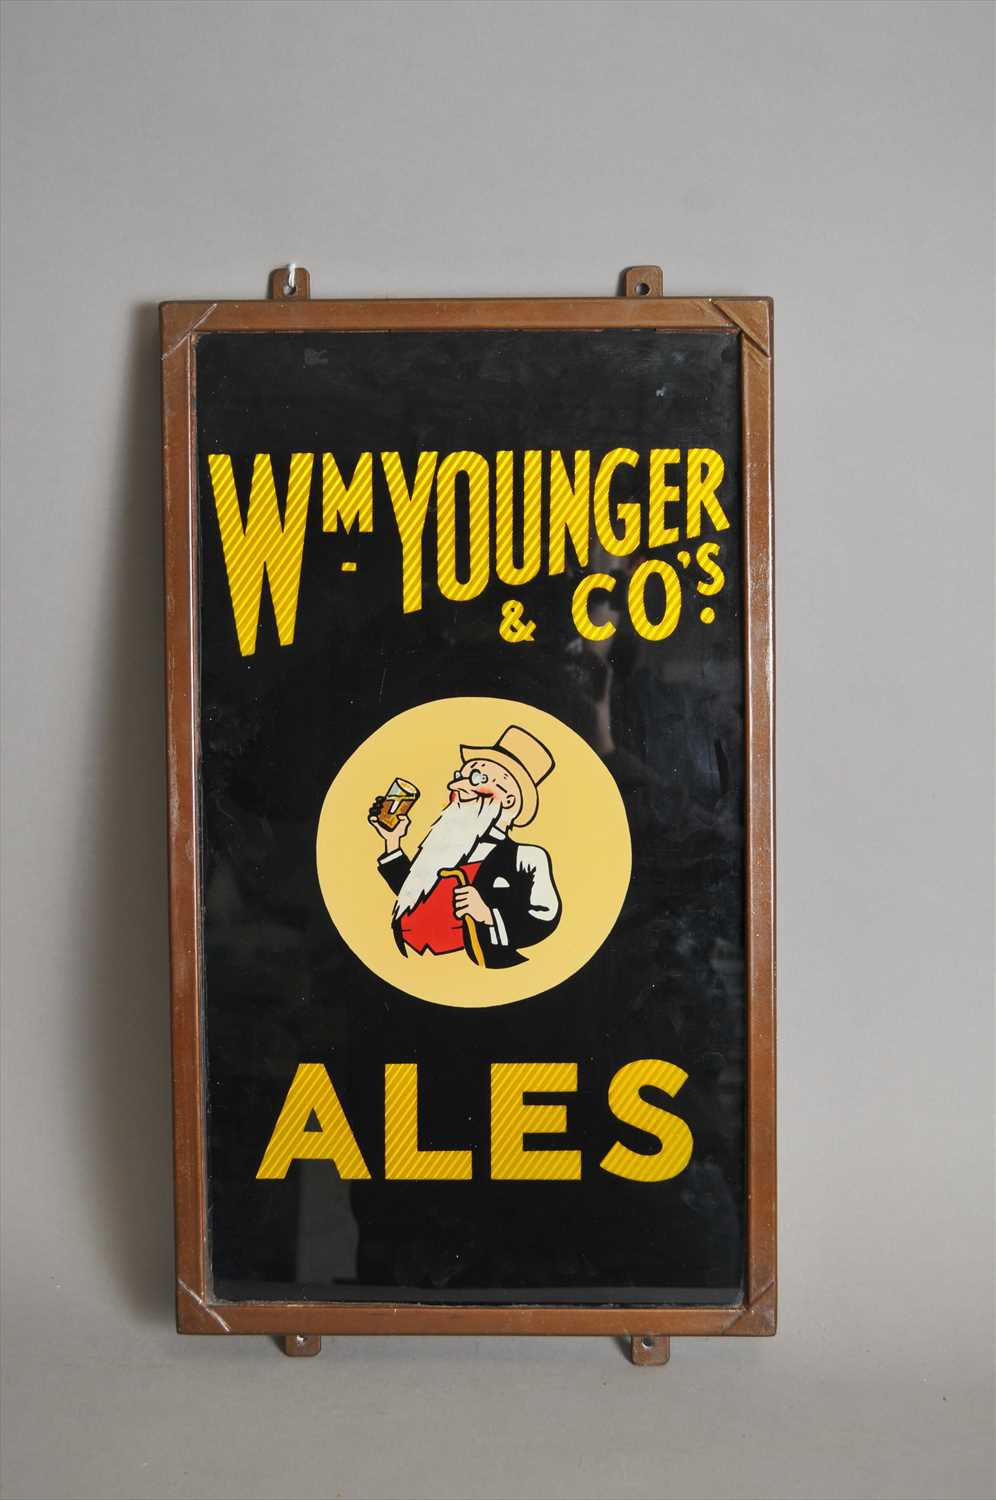 Lot 639 - An original encased slate-backed pub advertising sign for William Younger & Co's Ales